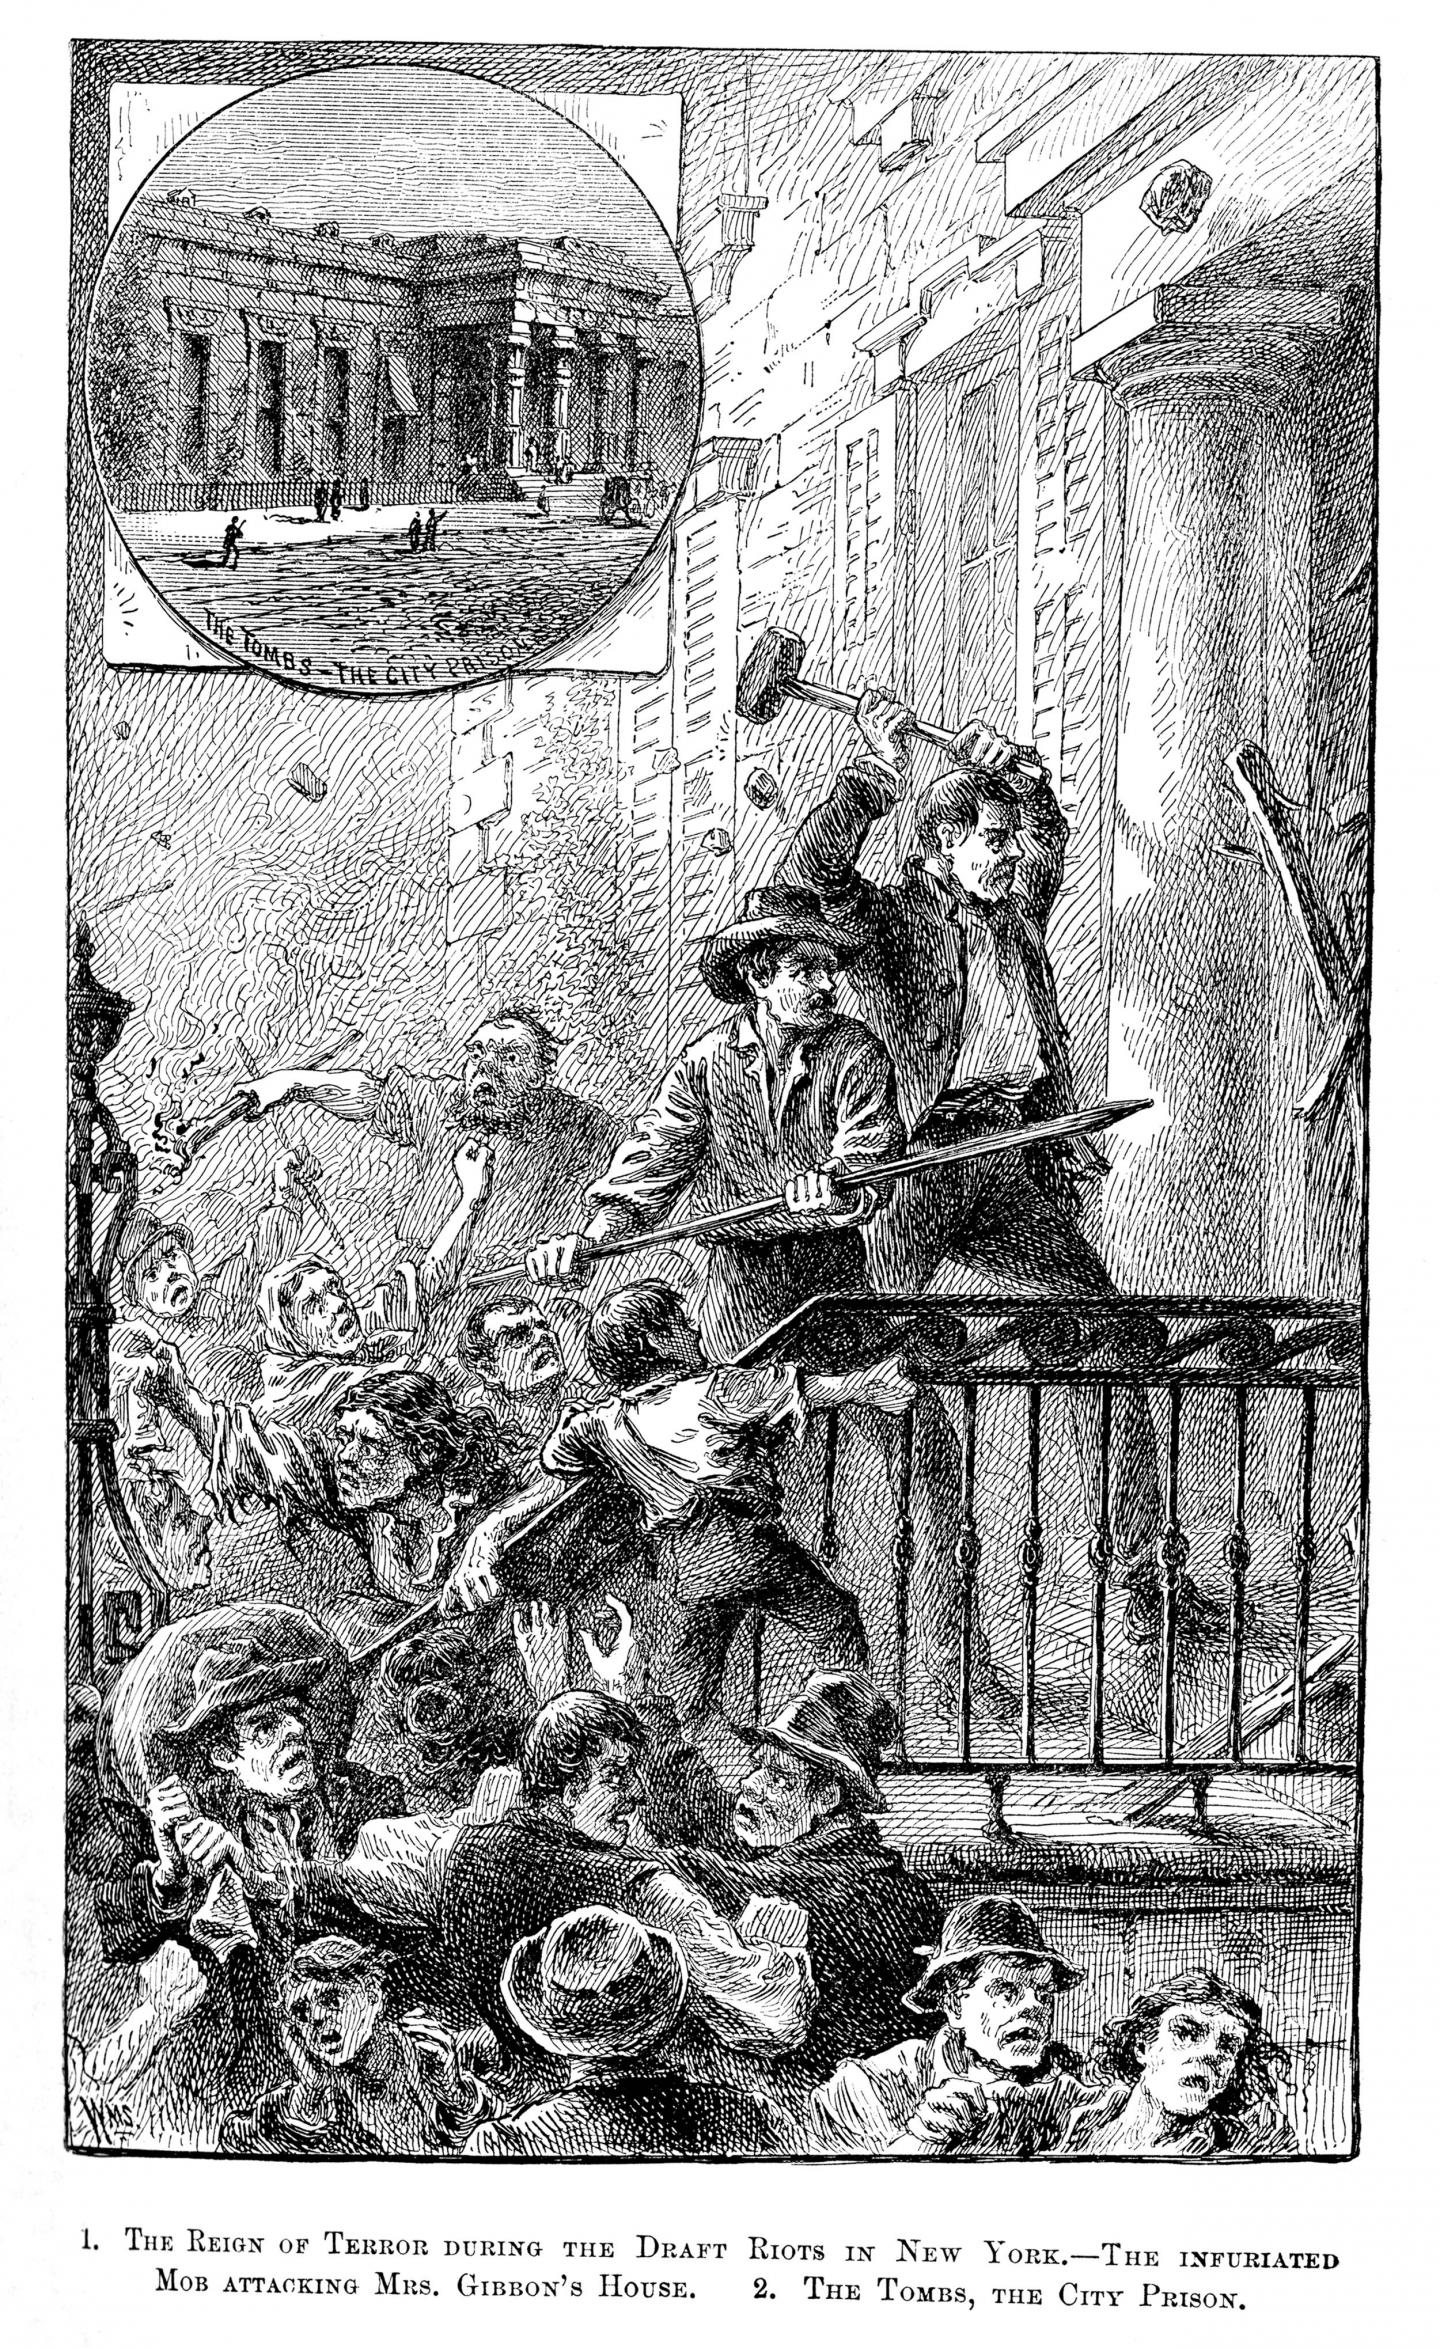 A contemporary illustration that appeared in a local New York paper shows the mob attacking the Gibbons Home